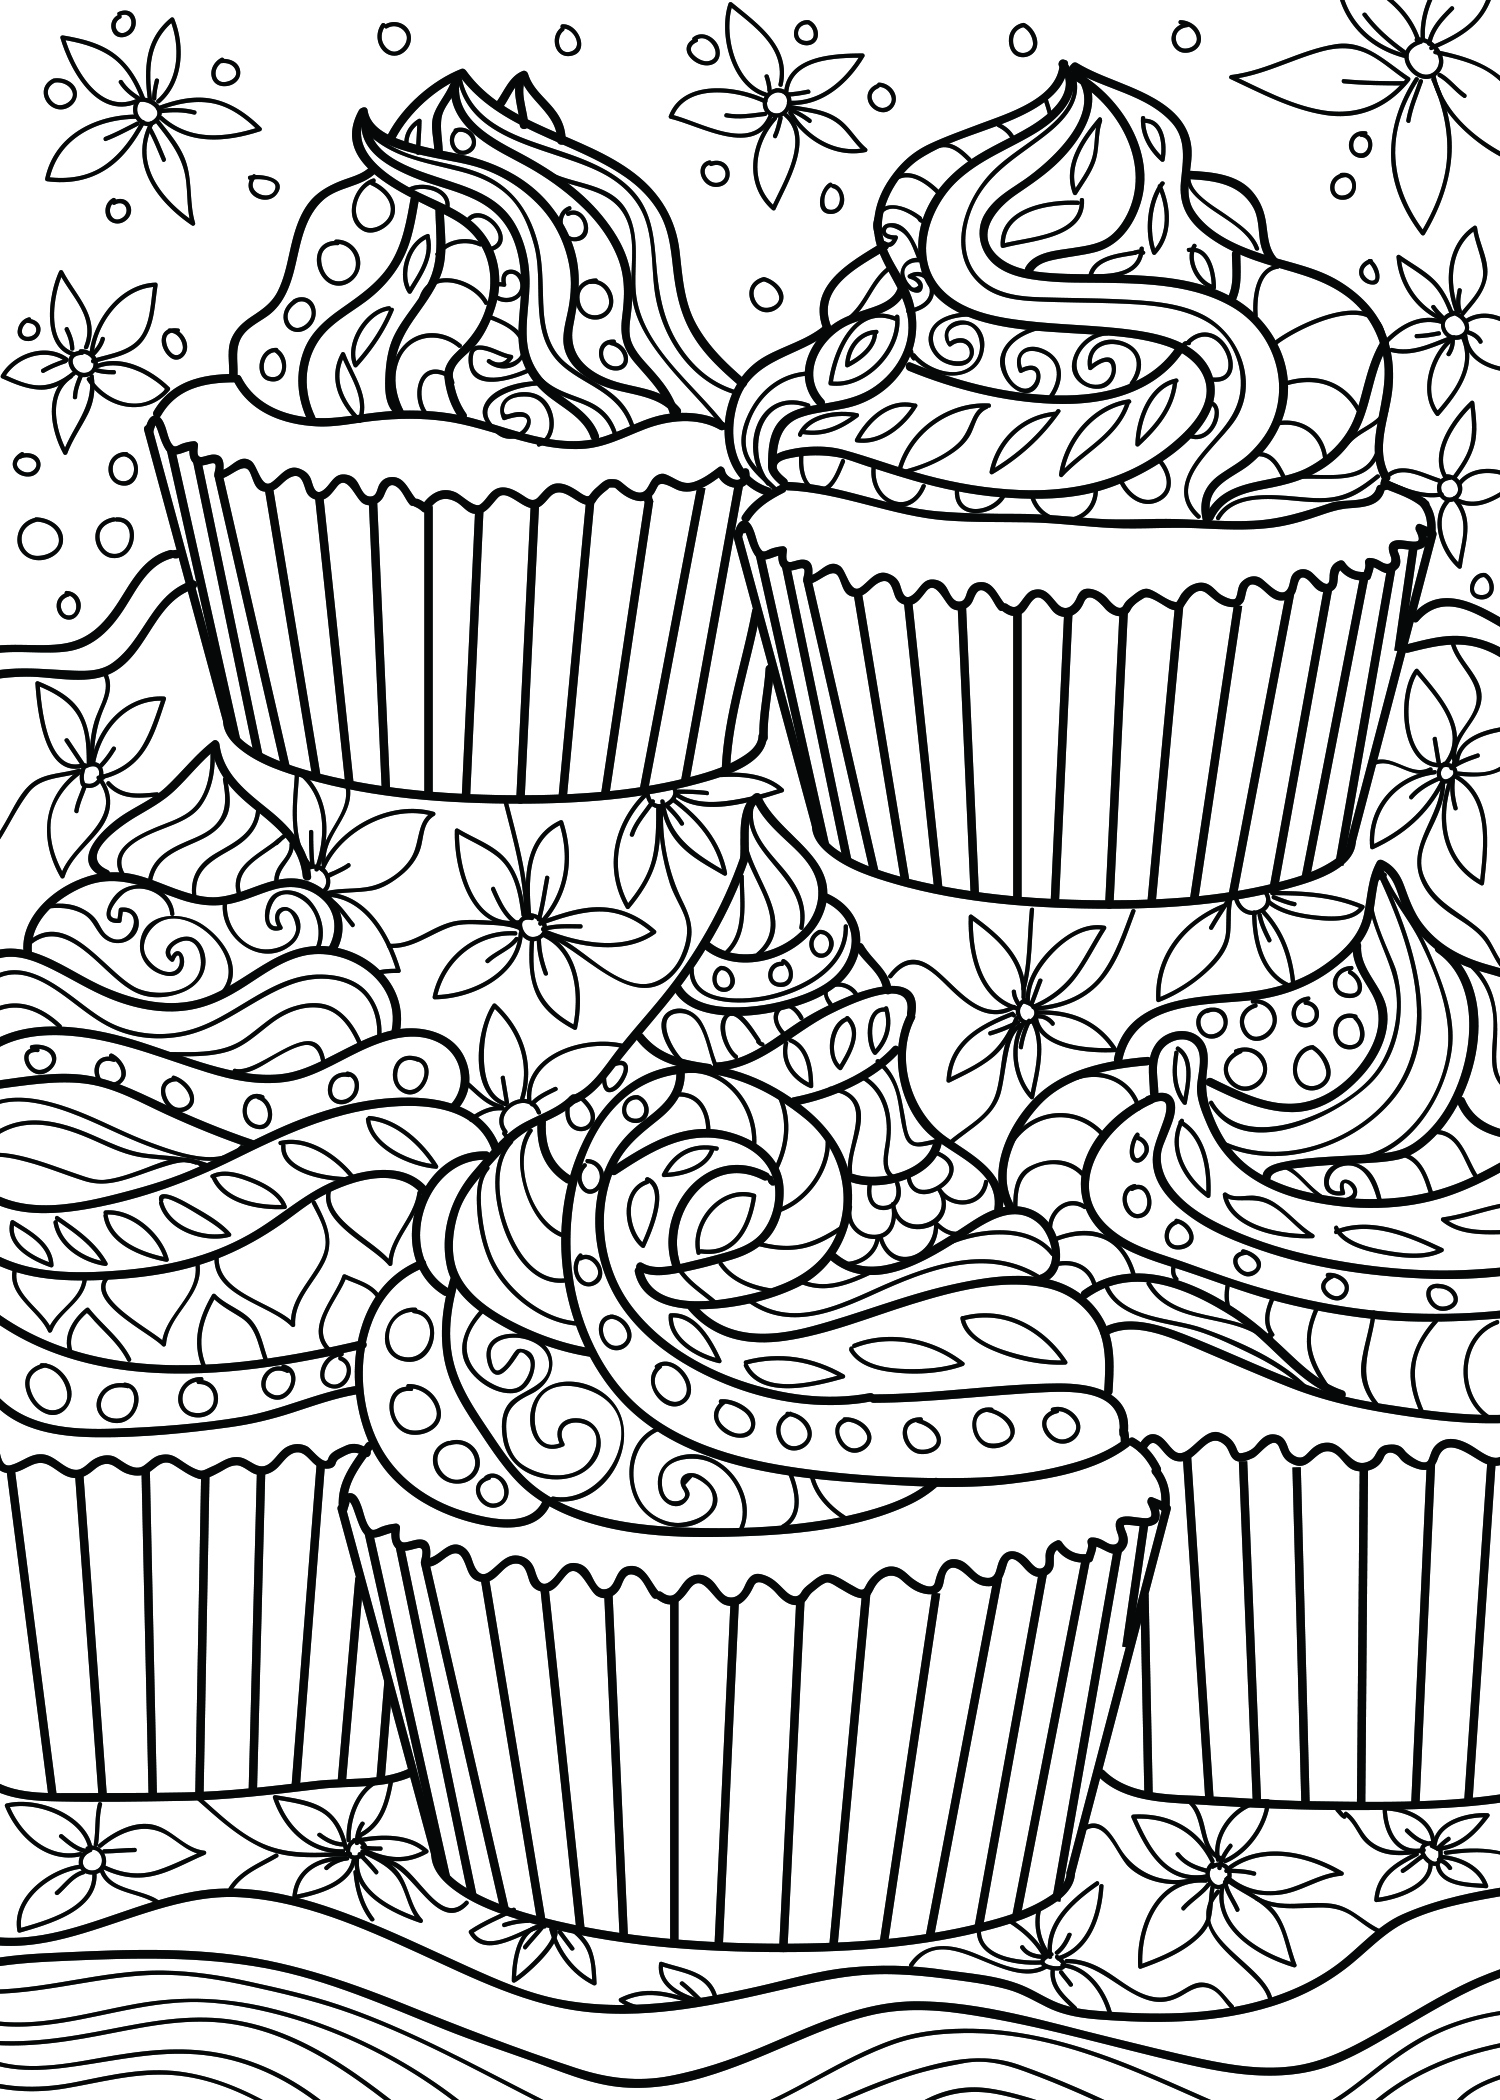 Cupcake Coloring Page - Coloring Home